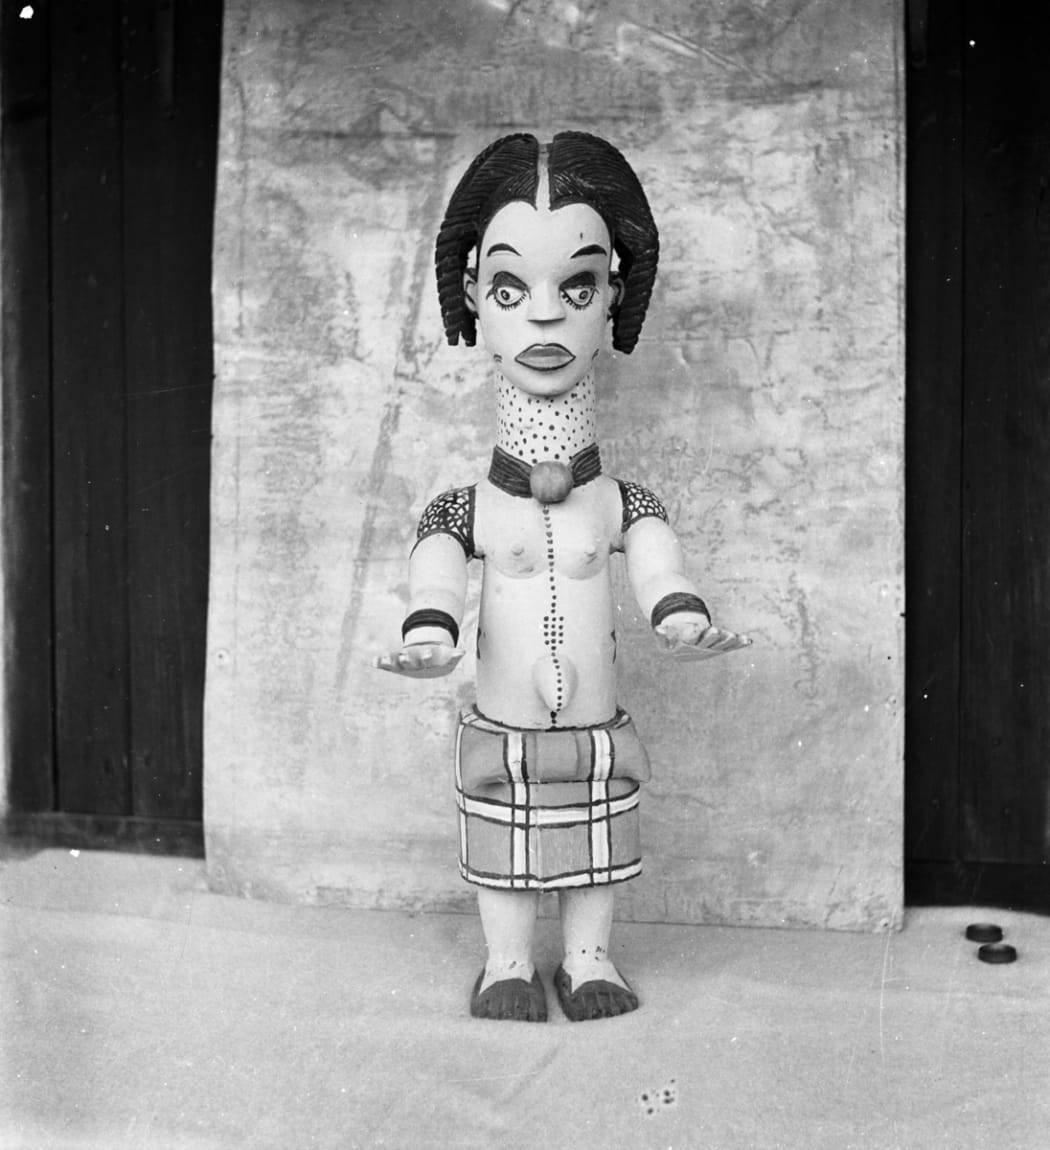 A 'modern' Anang female doll figure, carved in wood and painted in a 'naturalistic' style. Photographed by G.I. Jones in South Eastern Nigeria between 1932-1938. Image courtesy of the Cambridge Museum of Archeaology and Anthropology (N.13196.GIJ).